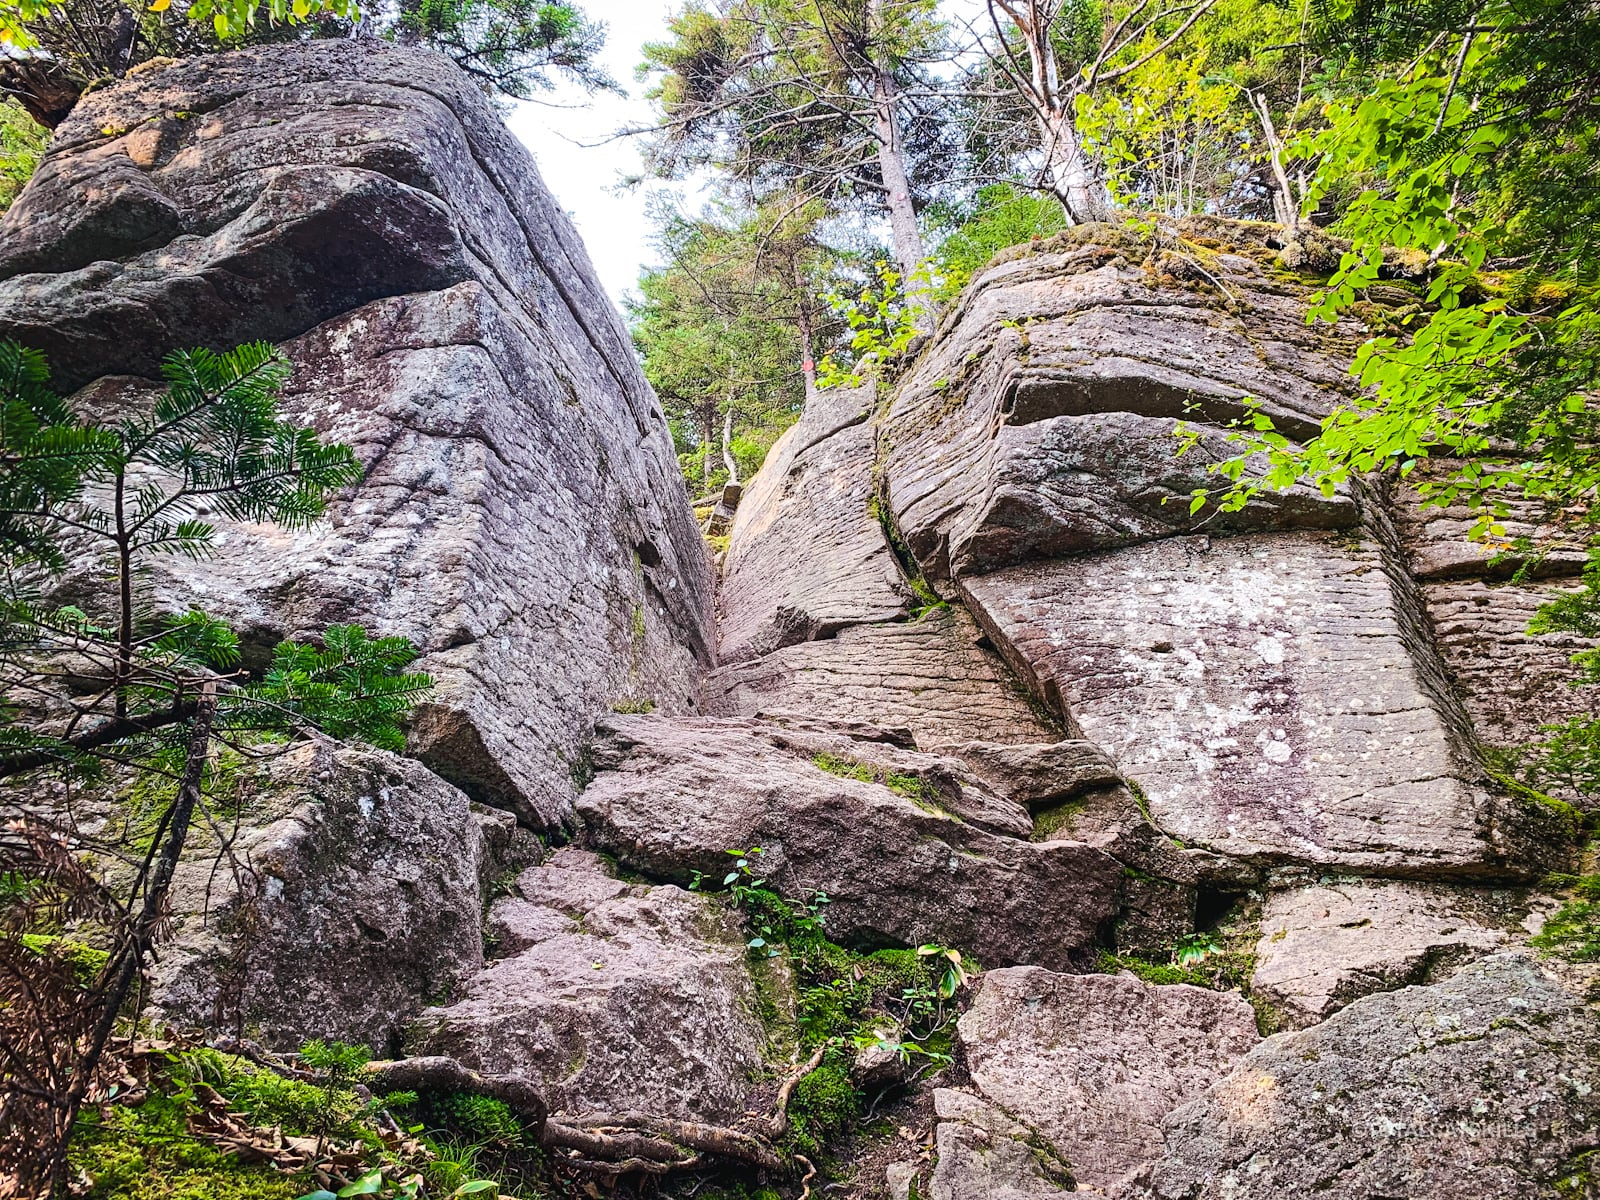 cornell crack rock formation